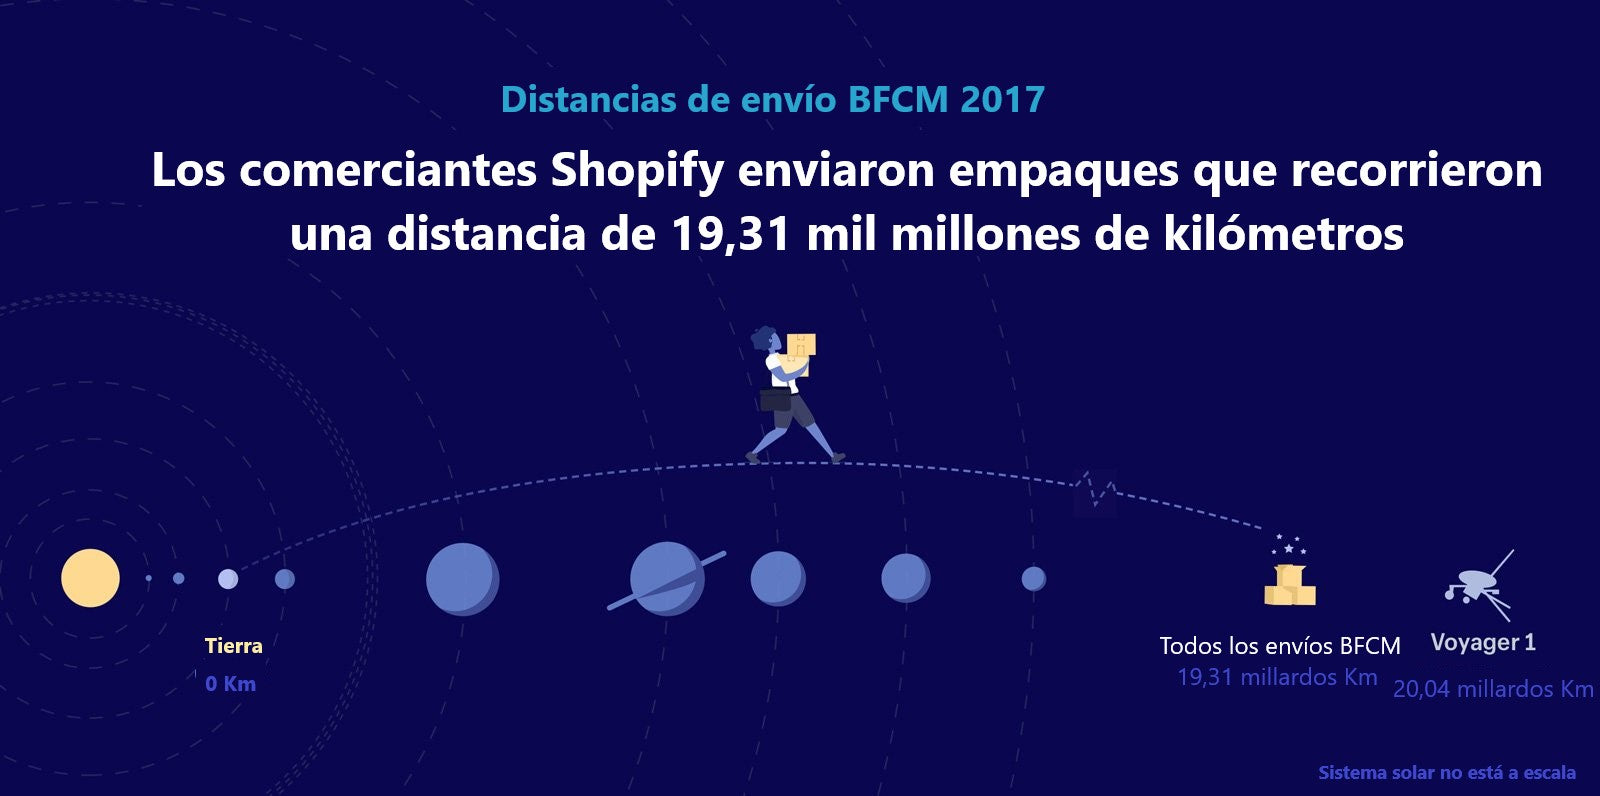 BFCM: Shopify merchants shipped packages 12.6 billion miles